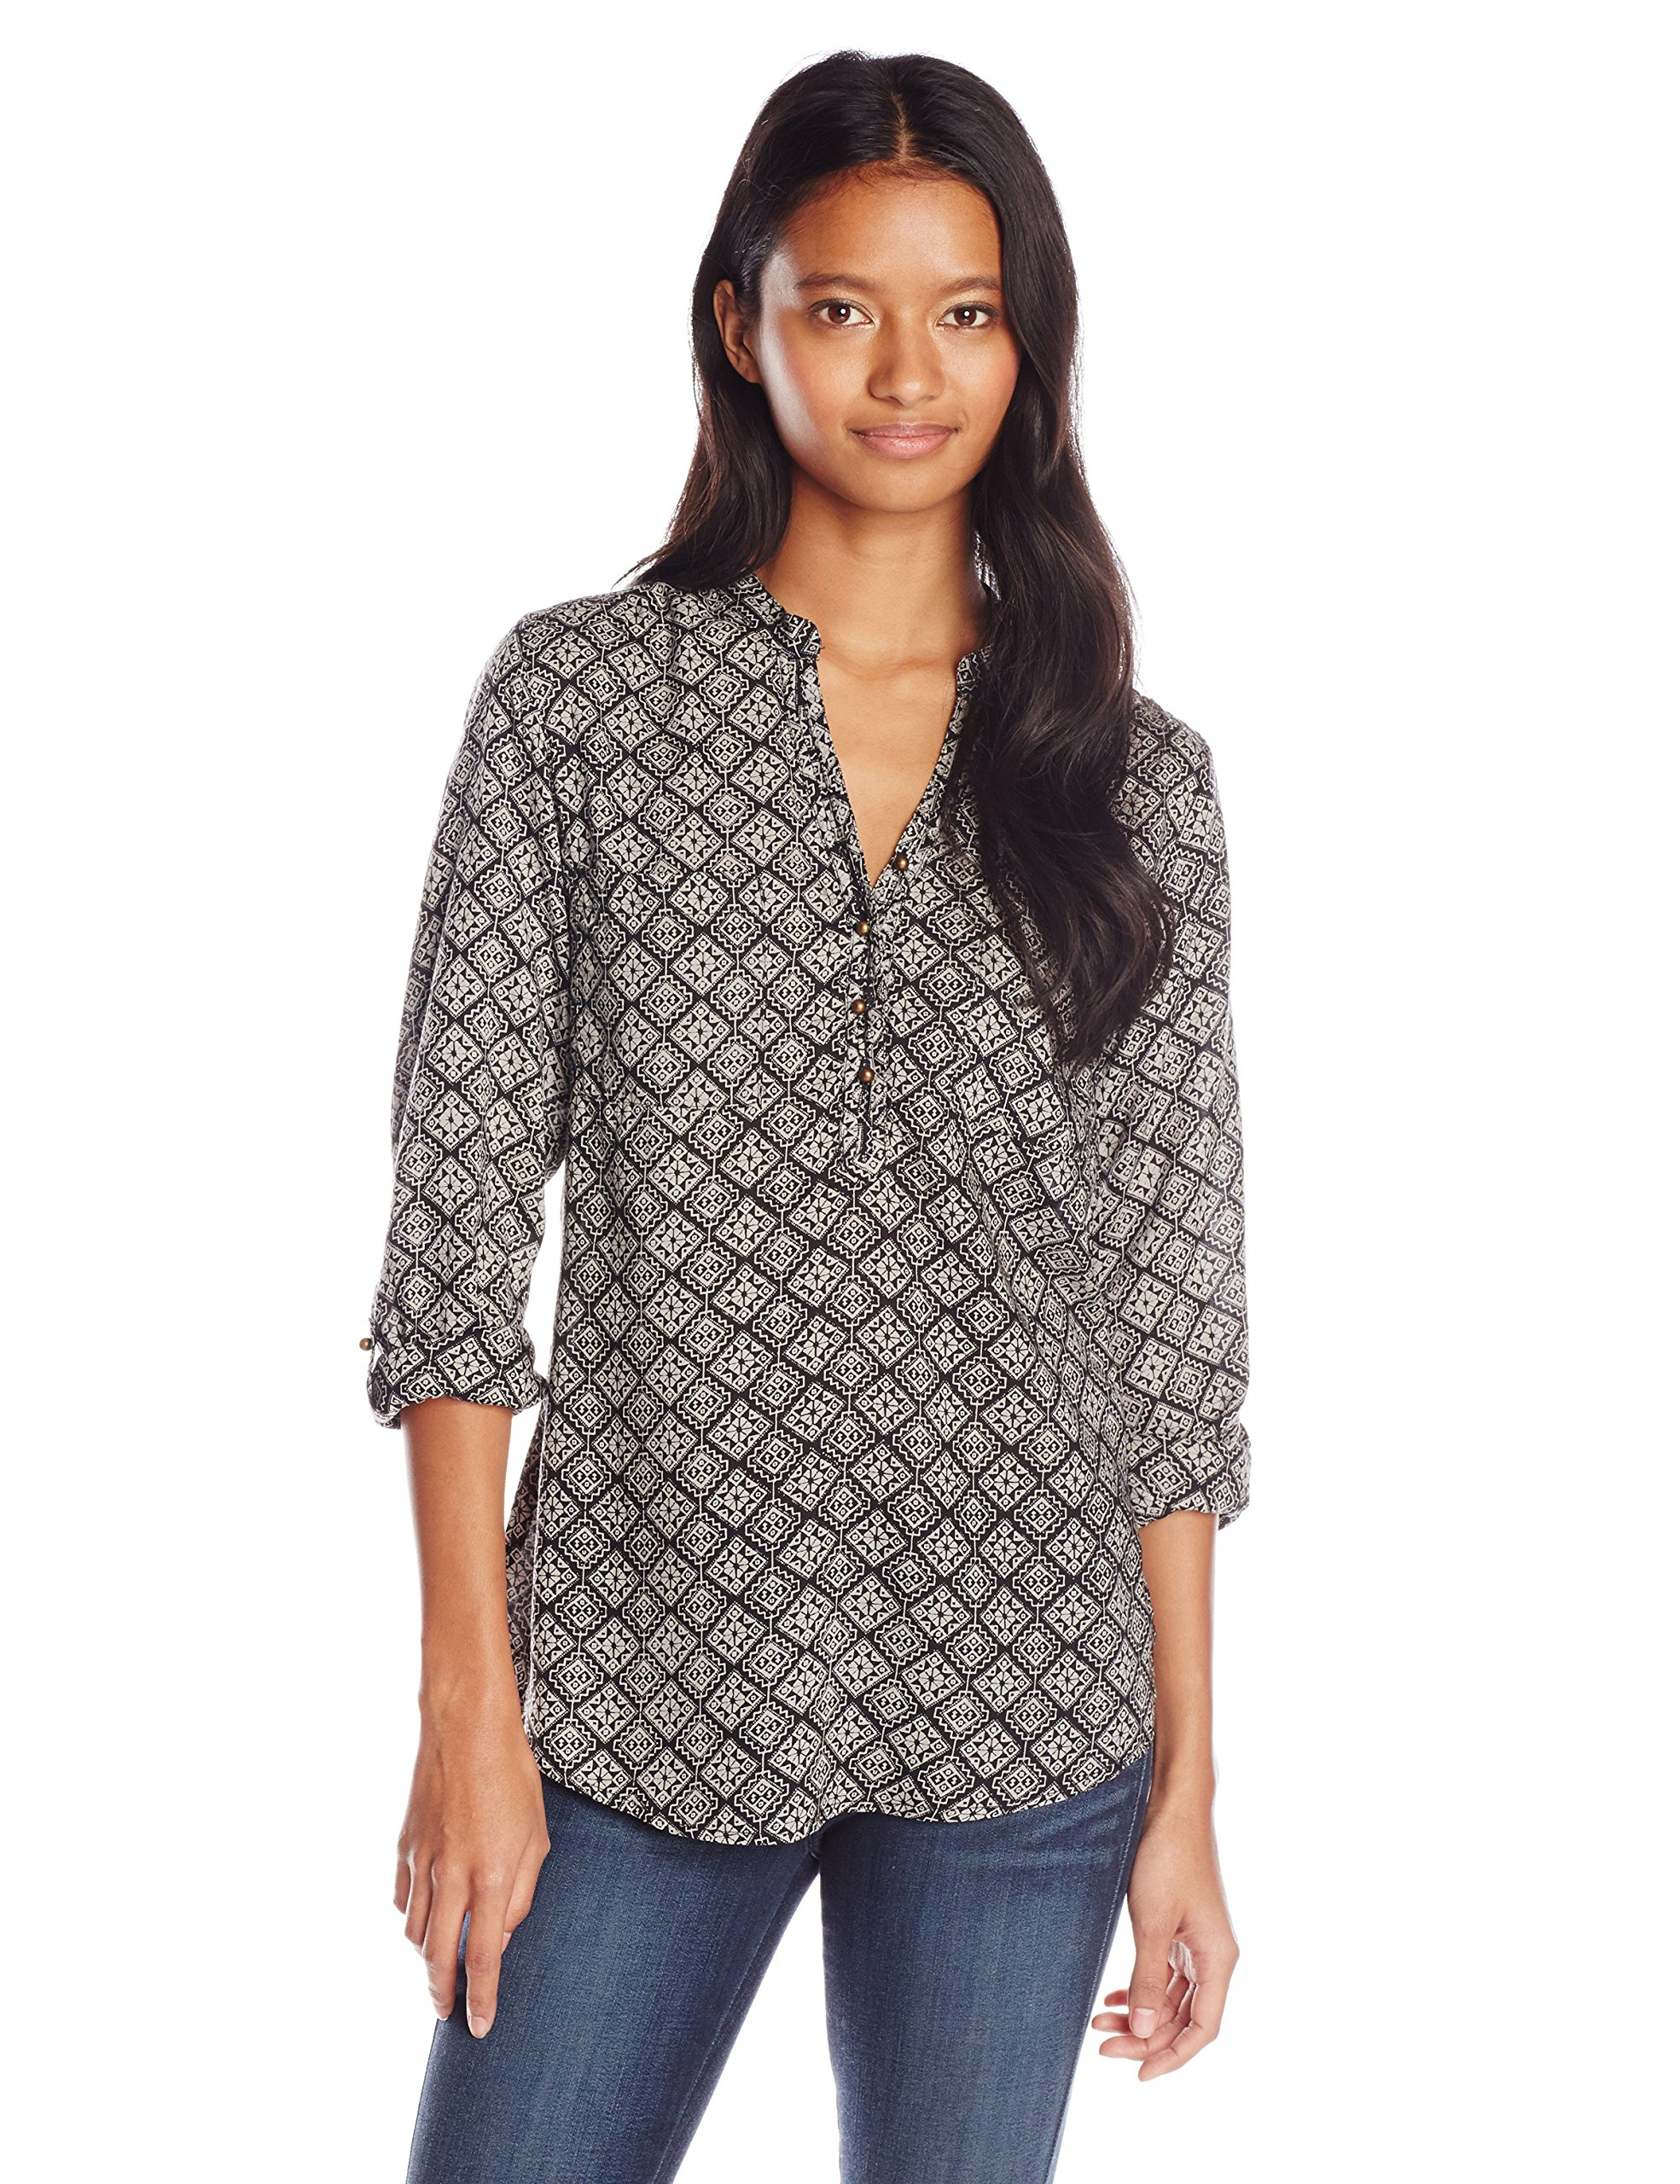 Angie Junior's Printed Long Sleeve Top with Buttons, Black, Small